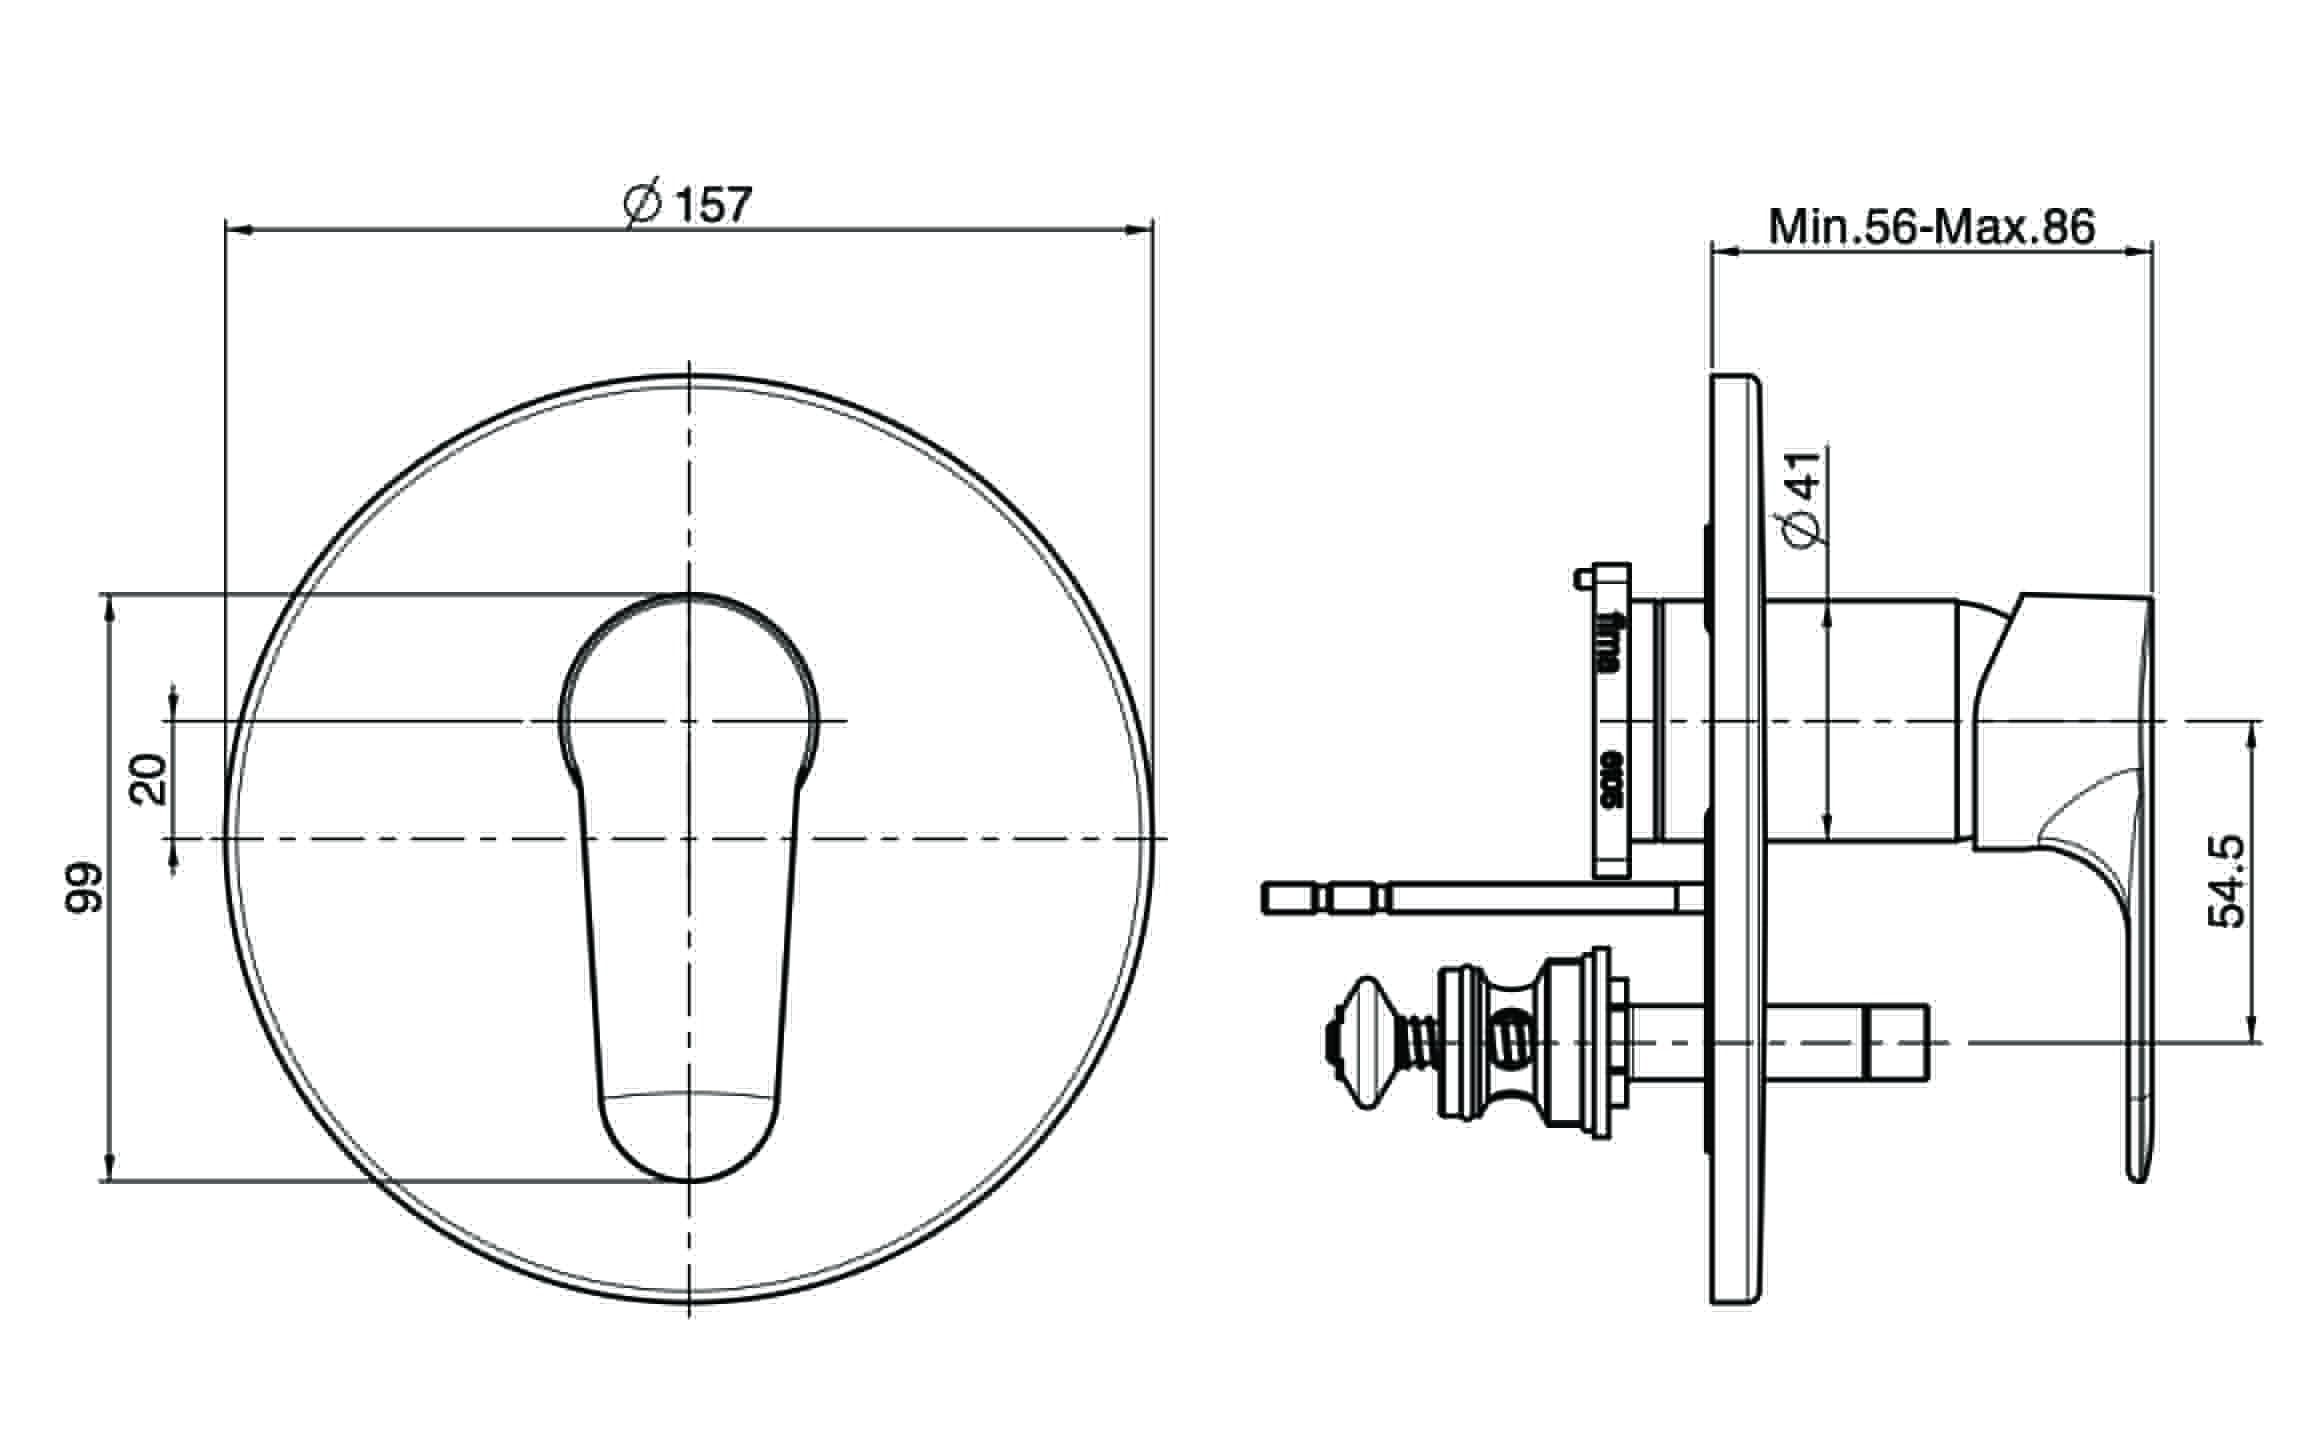 Fima Series22 Wallmixdiv F3839x2 Technical Drawing